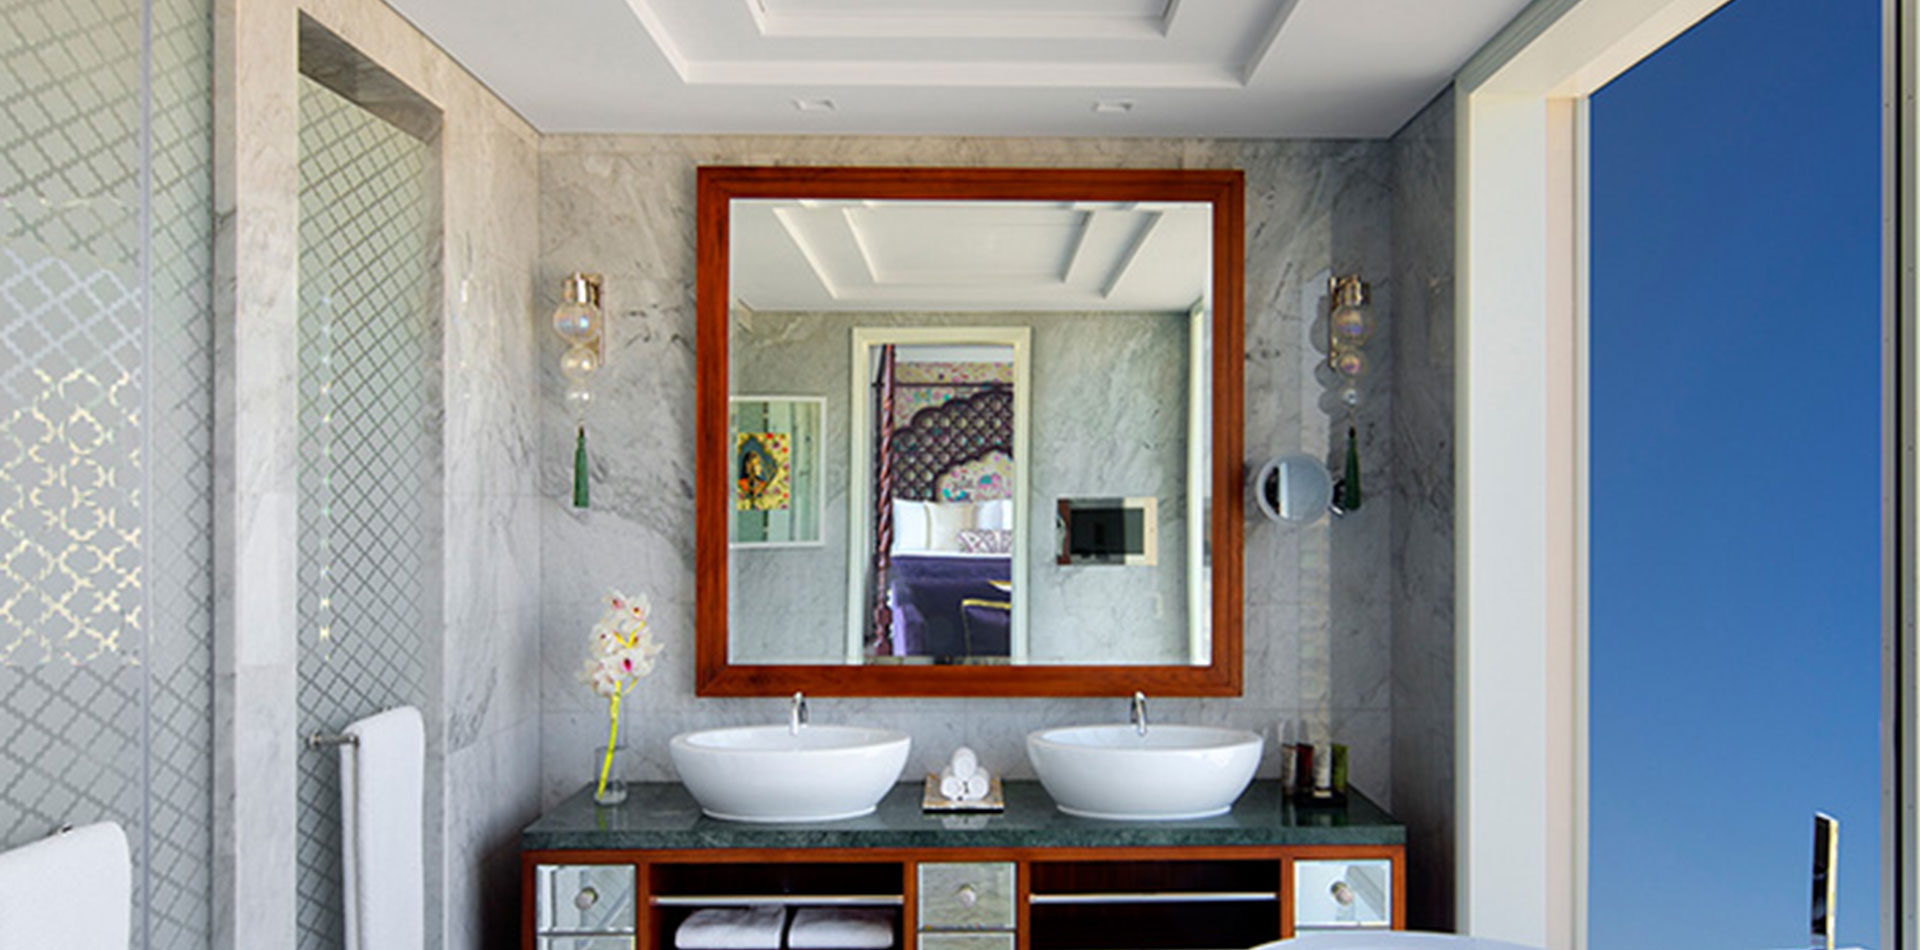 Vanity Mirrors Give Your Space A Sophisticated Look Joseph Group